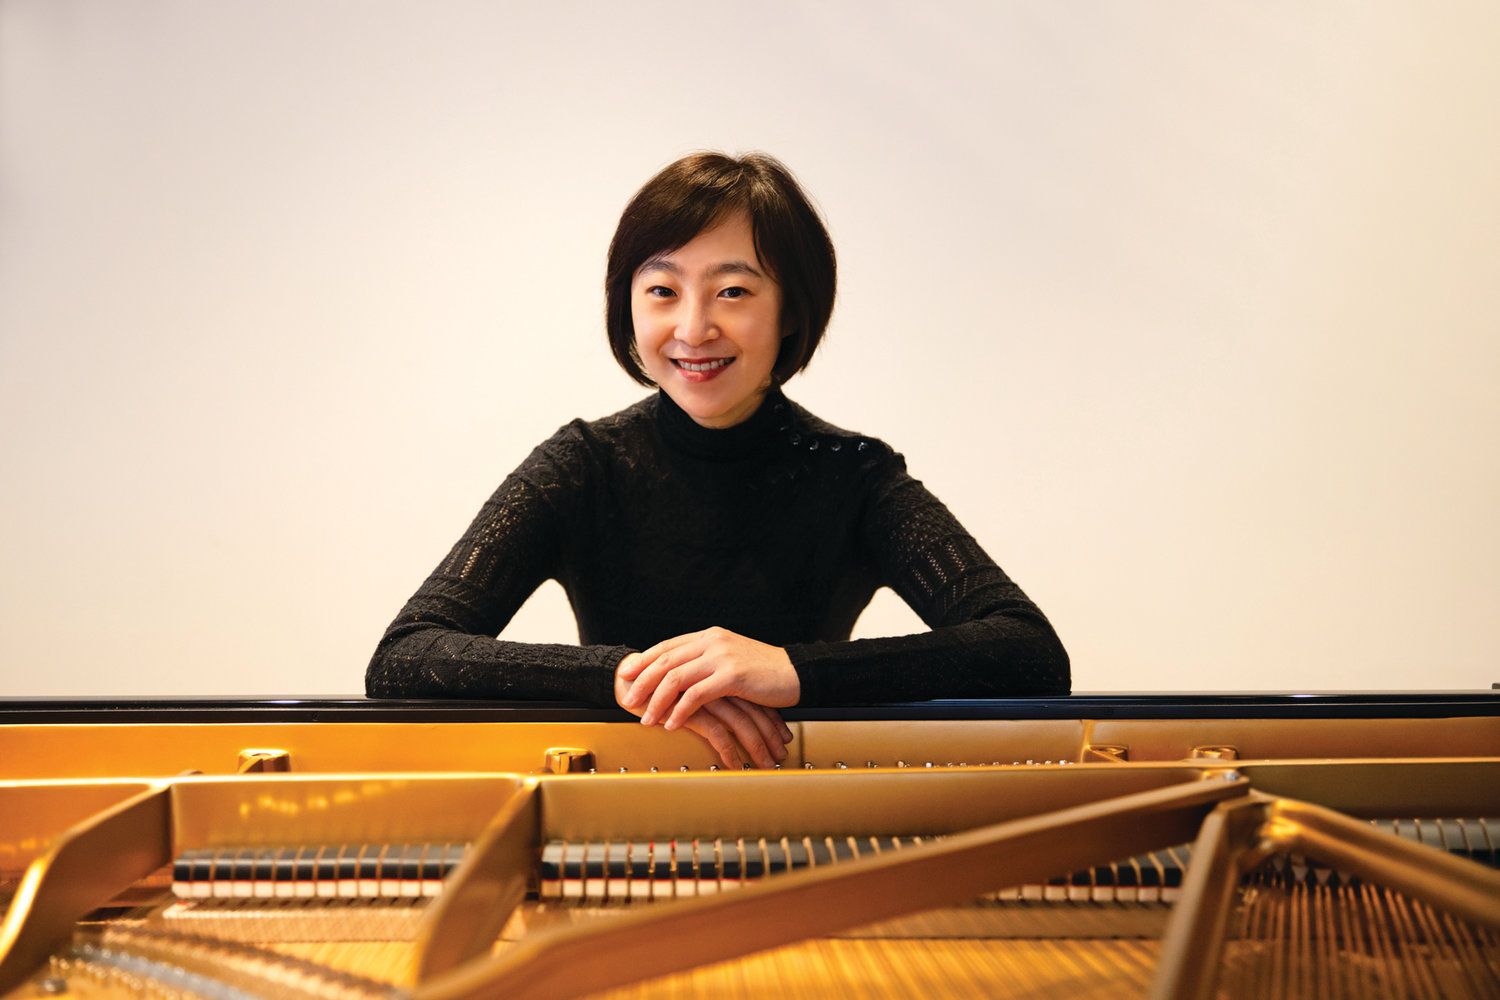 LEADING THE WAY: Natalie Zhu, artistic director of the Kingston Chamber Music Festival, has planned a series of free online concerts in celebration of Beethoven's 250th birthday.